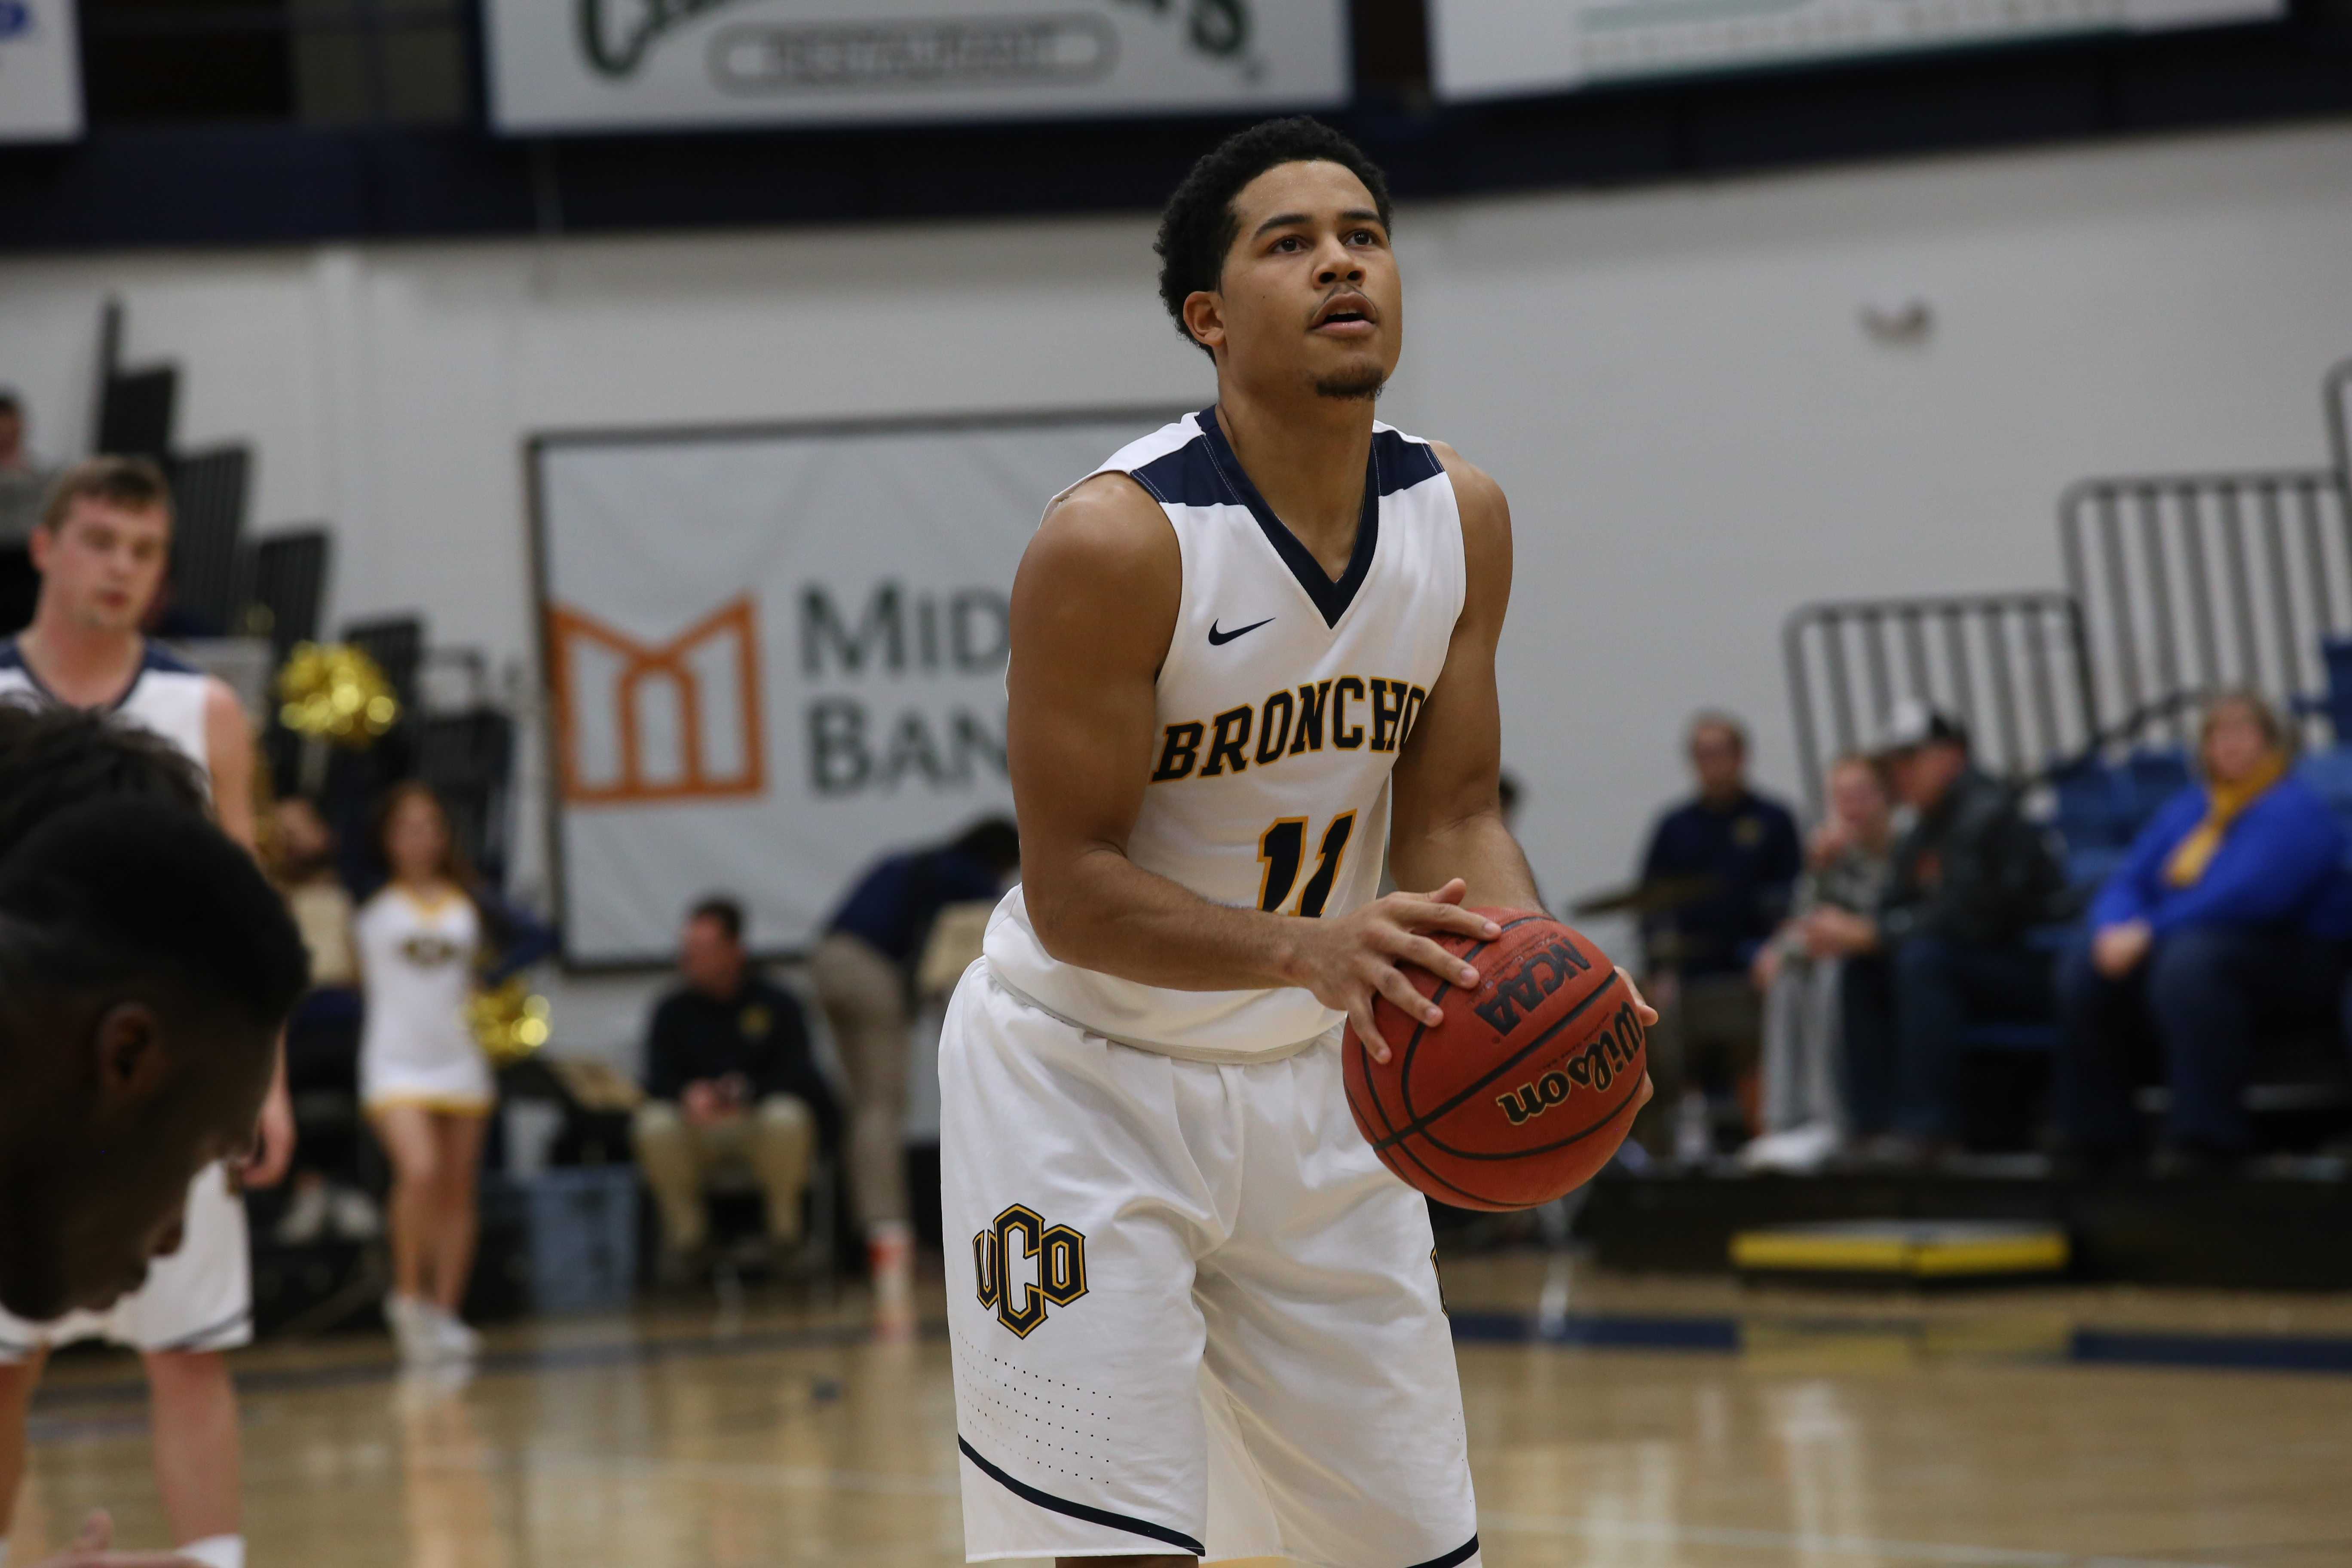 UCO Men's Basketball: Bronchos Lose Heartbreaker to Fort Hays State